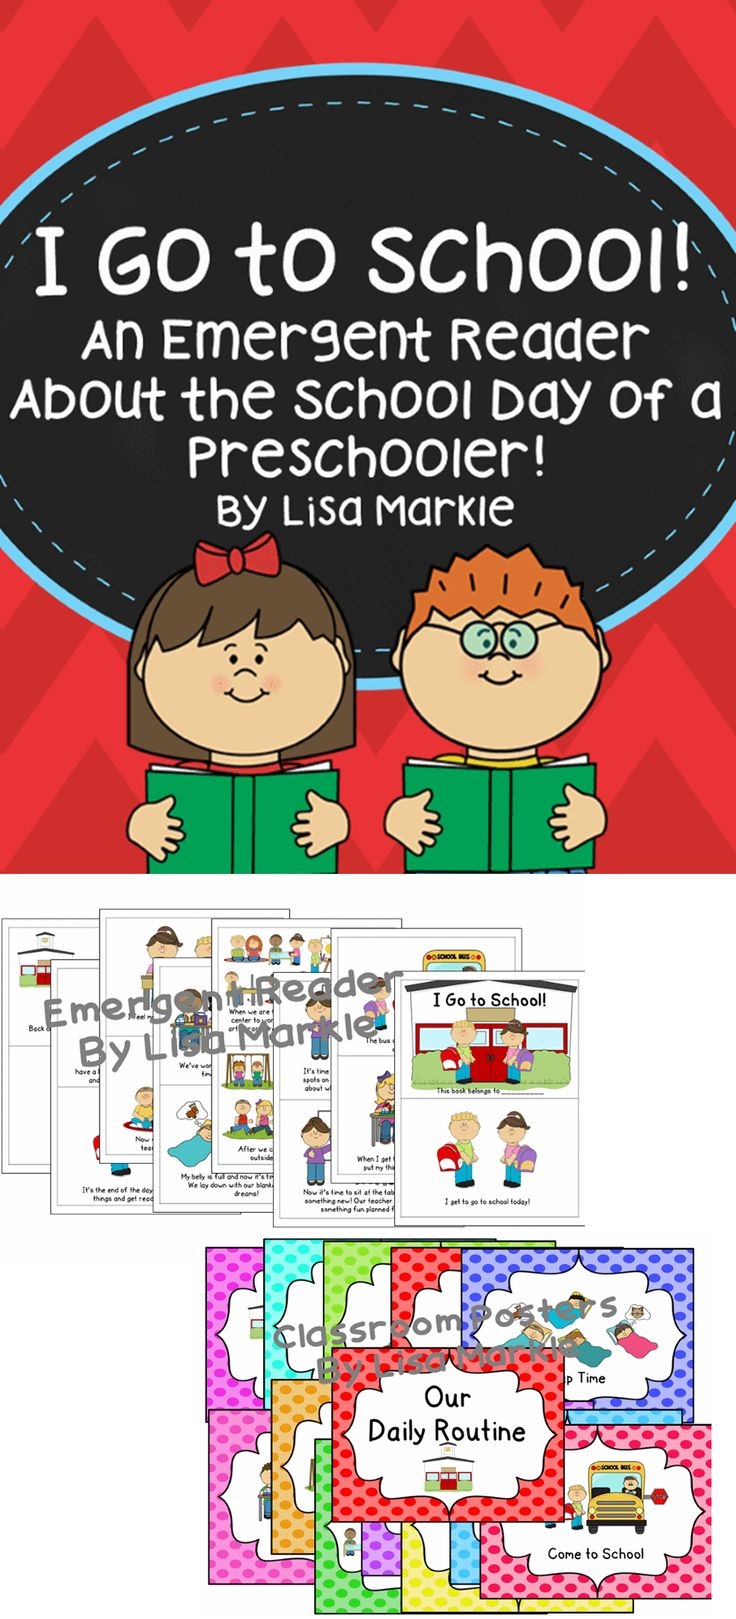 Just in time to go back to school! This is the perfect little book to read to your brand new class of preschoolers. It's a comforting way to introduce your daily classroom routine and make it sound fun. This set also includes a set of classroom posters with illustrations that match the book, so you can refer to them while transitioning throughout your day!